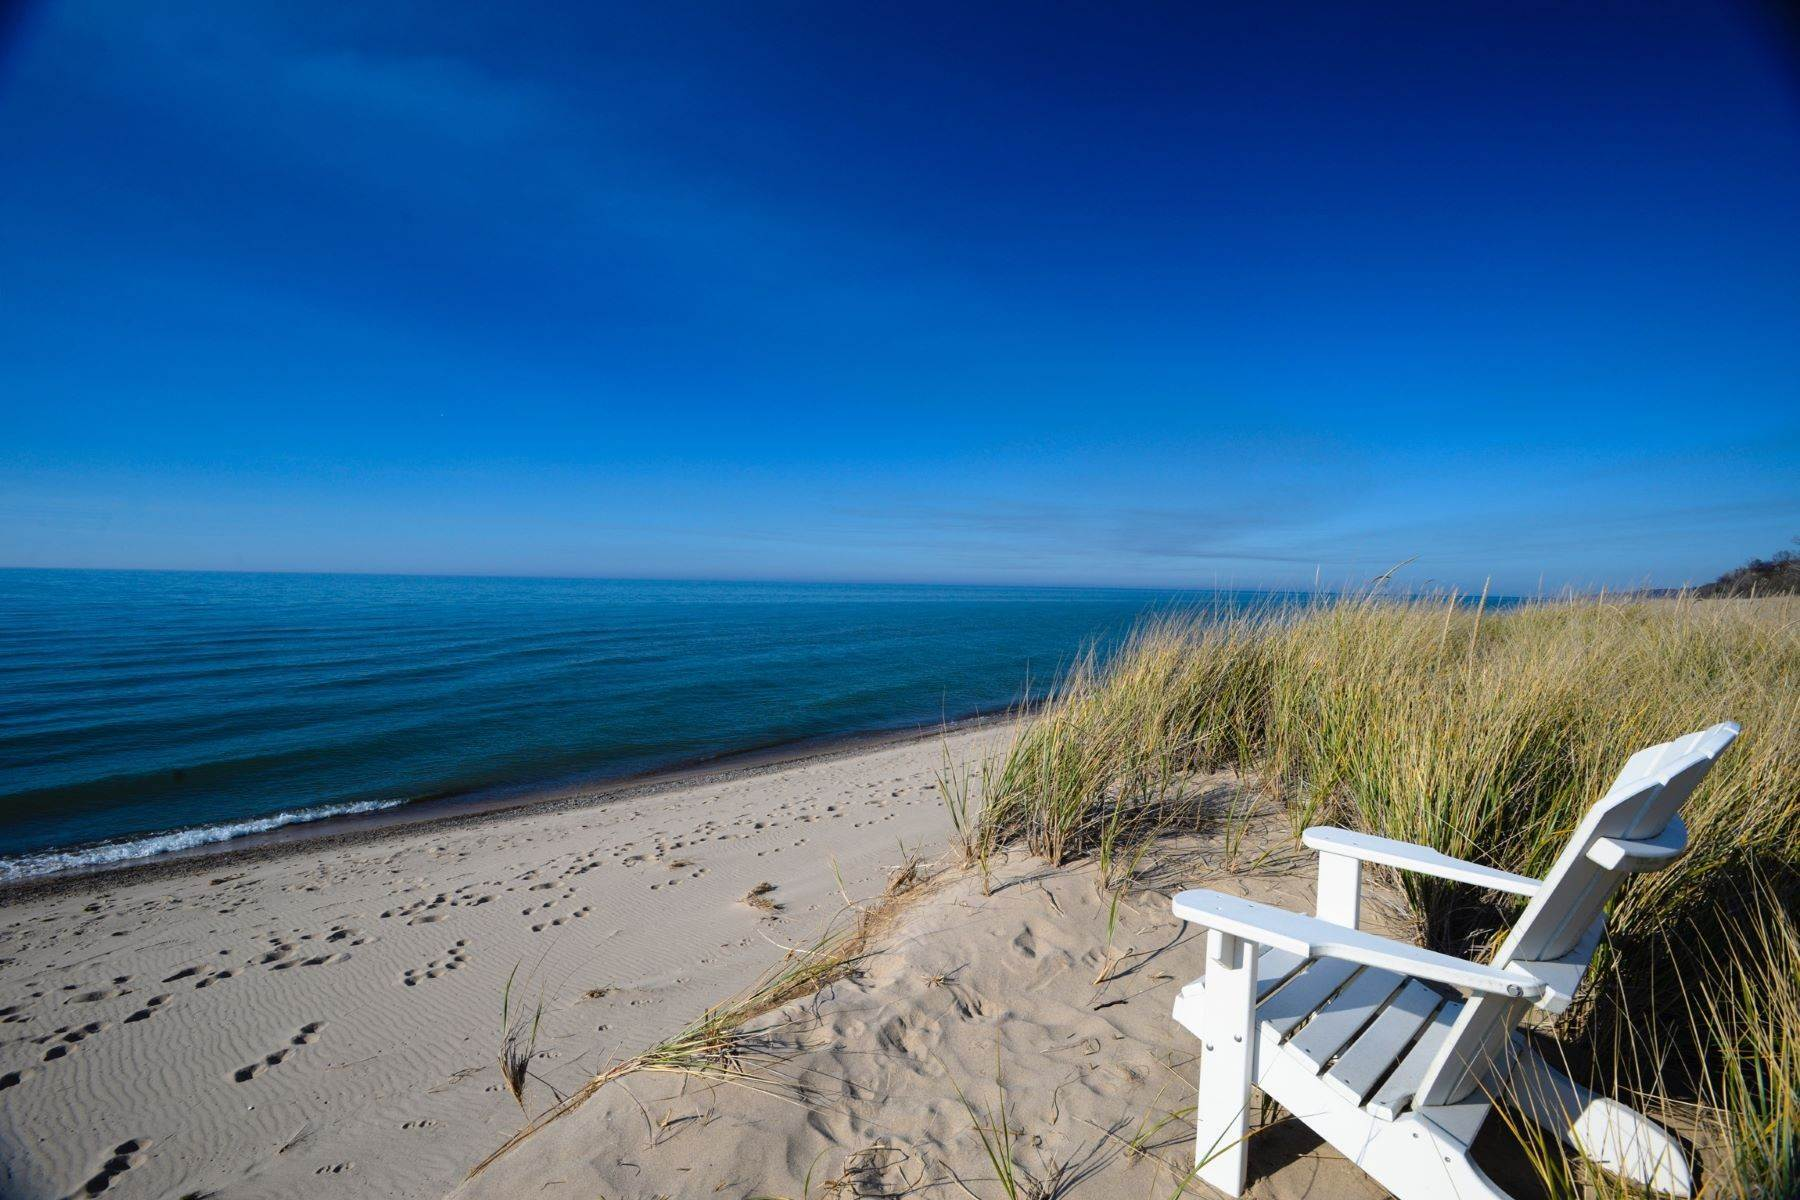 Land for Sale at Premier Lake Michigan Property With Captivating Views Lot 2 Saugatuck Beach Road Saugatuck, Michigan 49453 United States